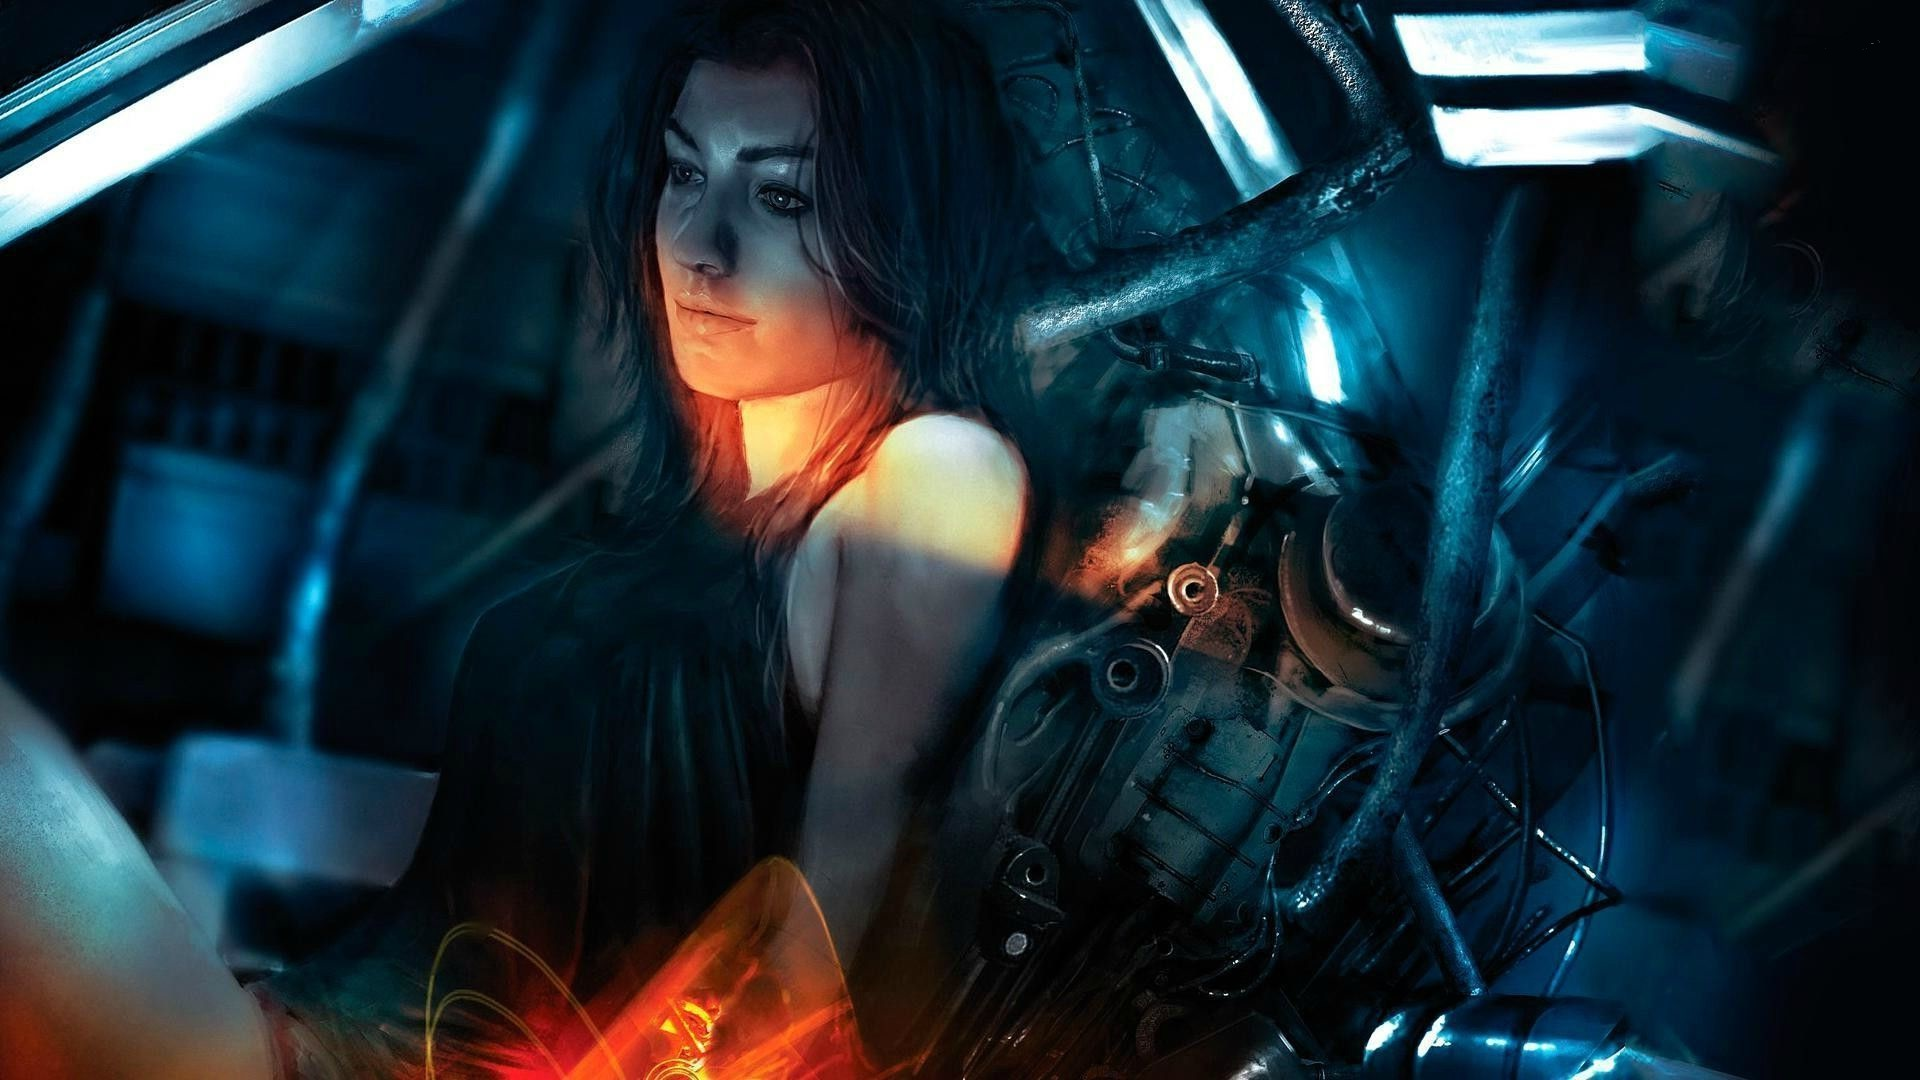 Image Result For Hd Wallpaper Background Image Id X Women Cosplay